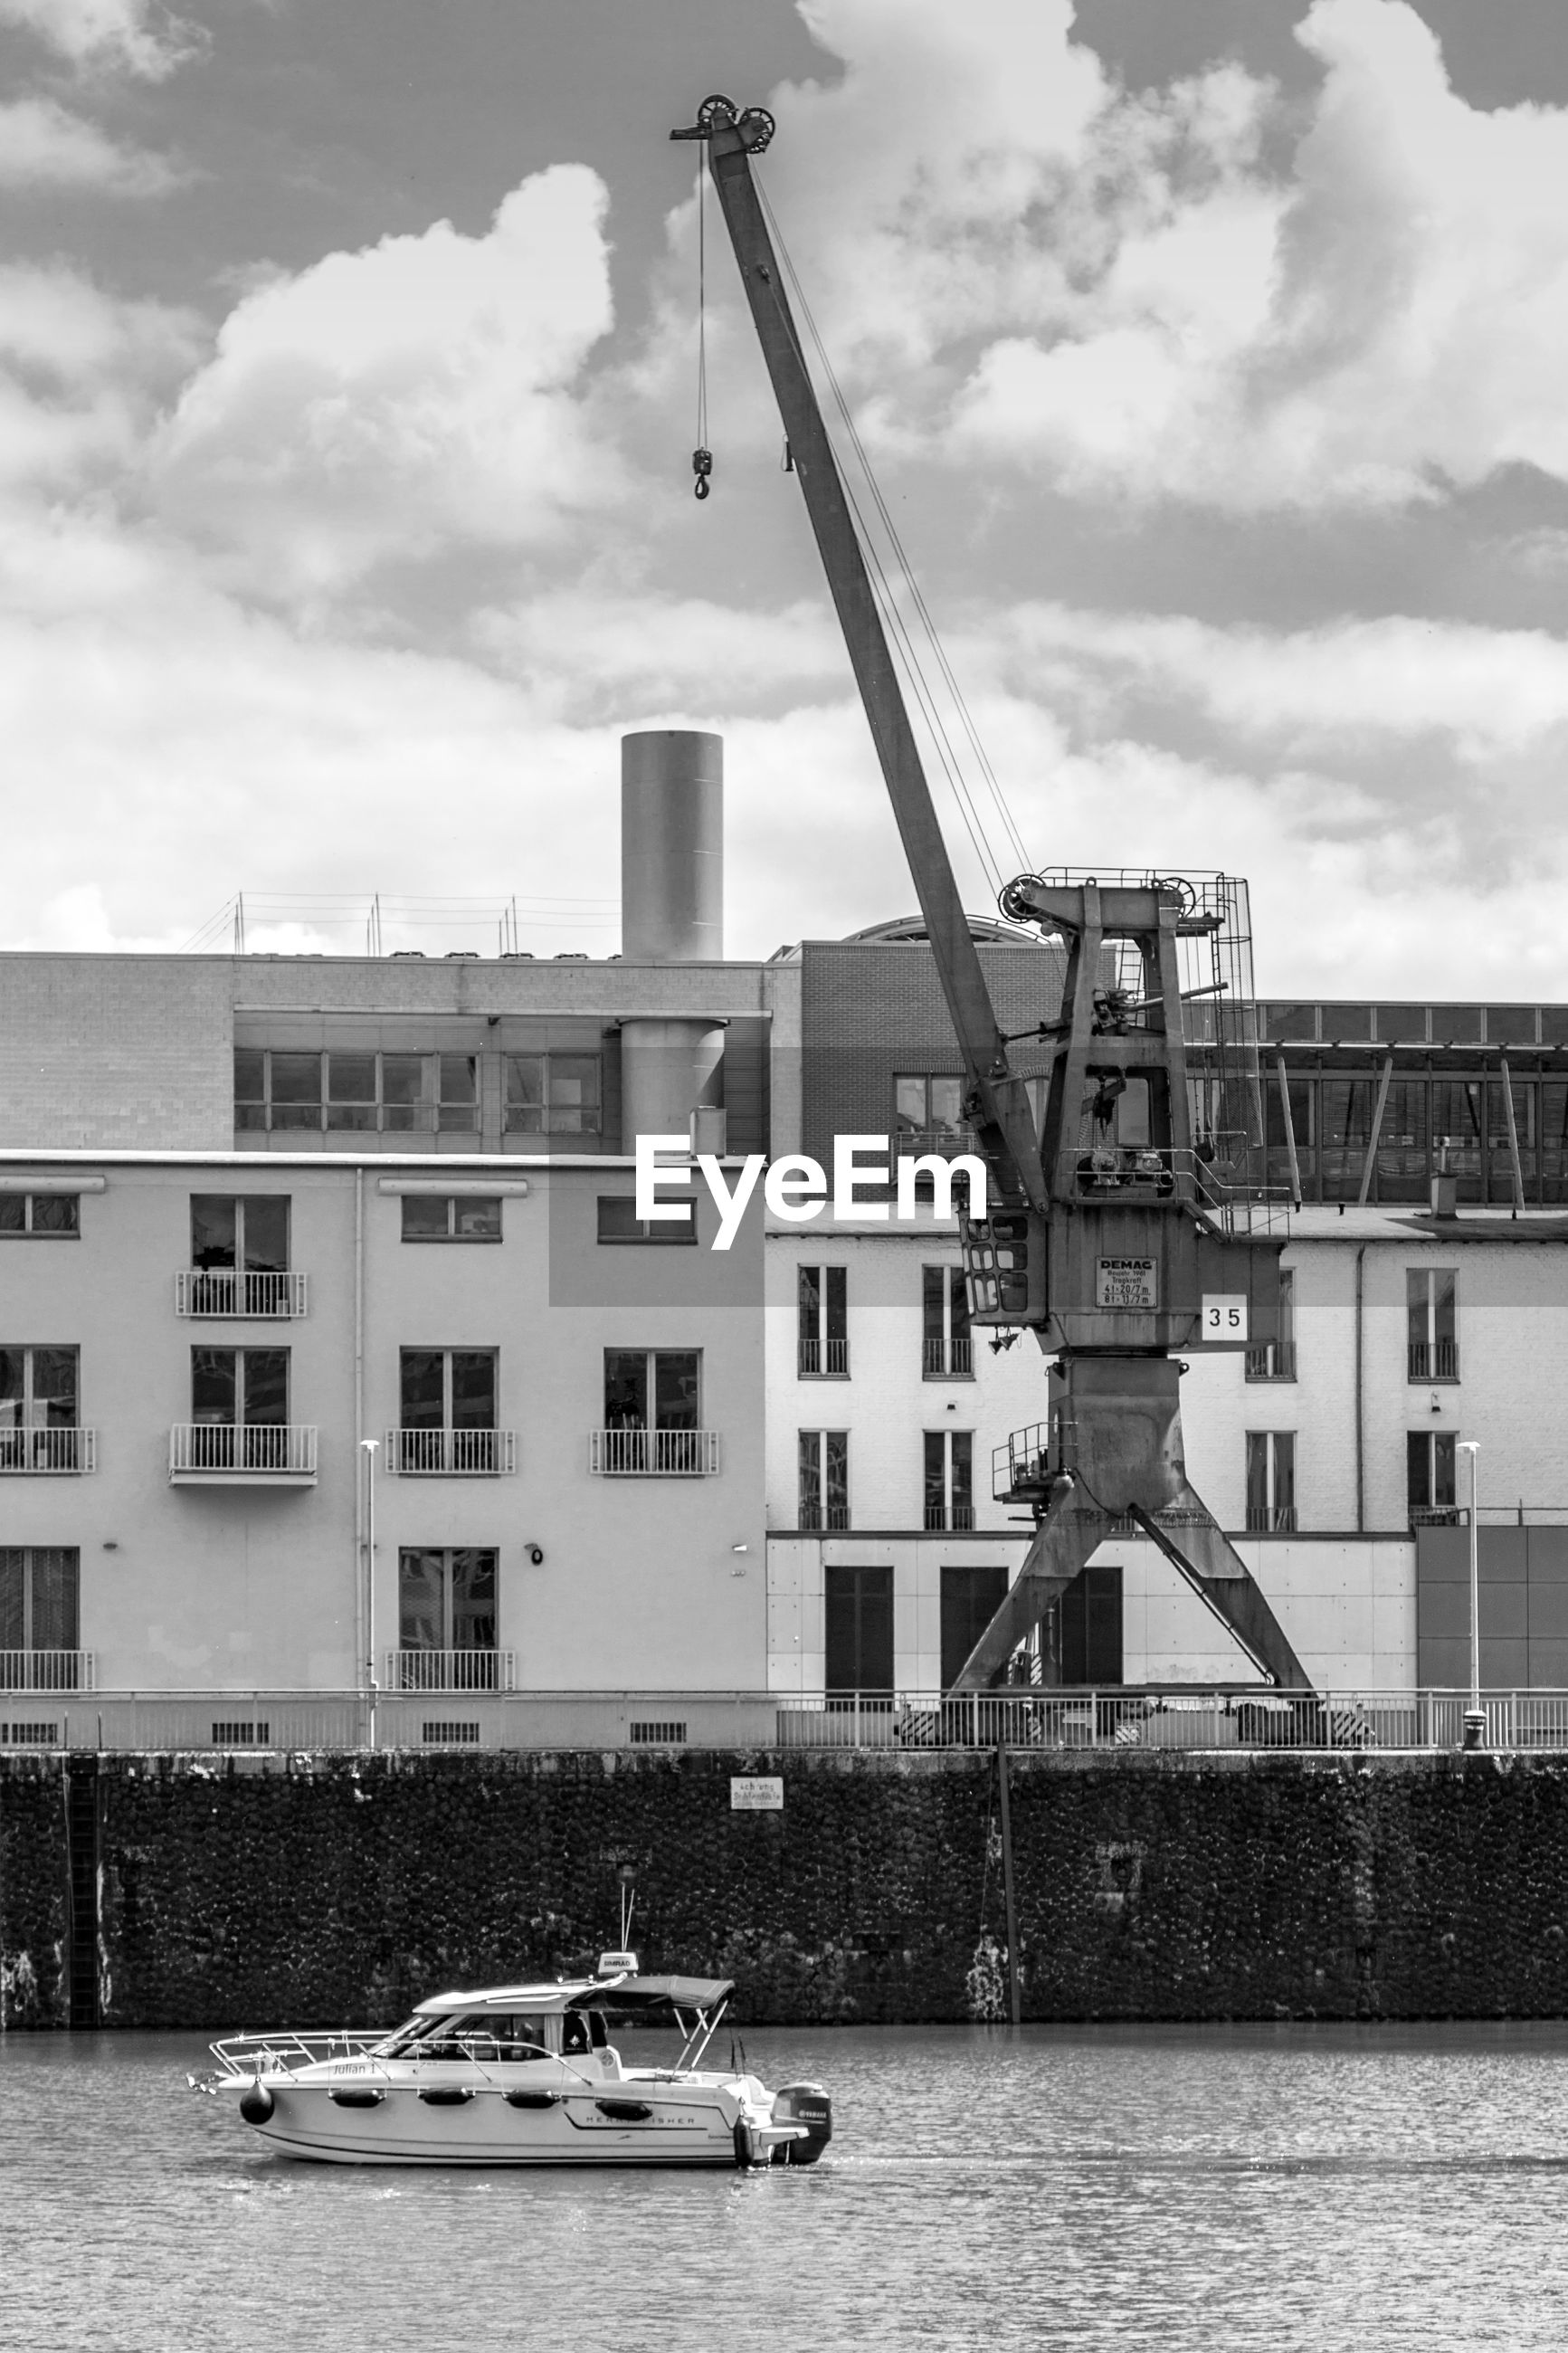 building exterior, architecture, crane - construction machinery, built structure, waterfront, development, transportation, water, sky, mode of transport, crane, cloud - sky, day, commercial dock, industry, outdoors, harbor, no people, tall - high, cloudy